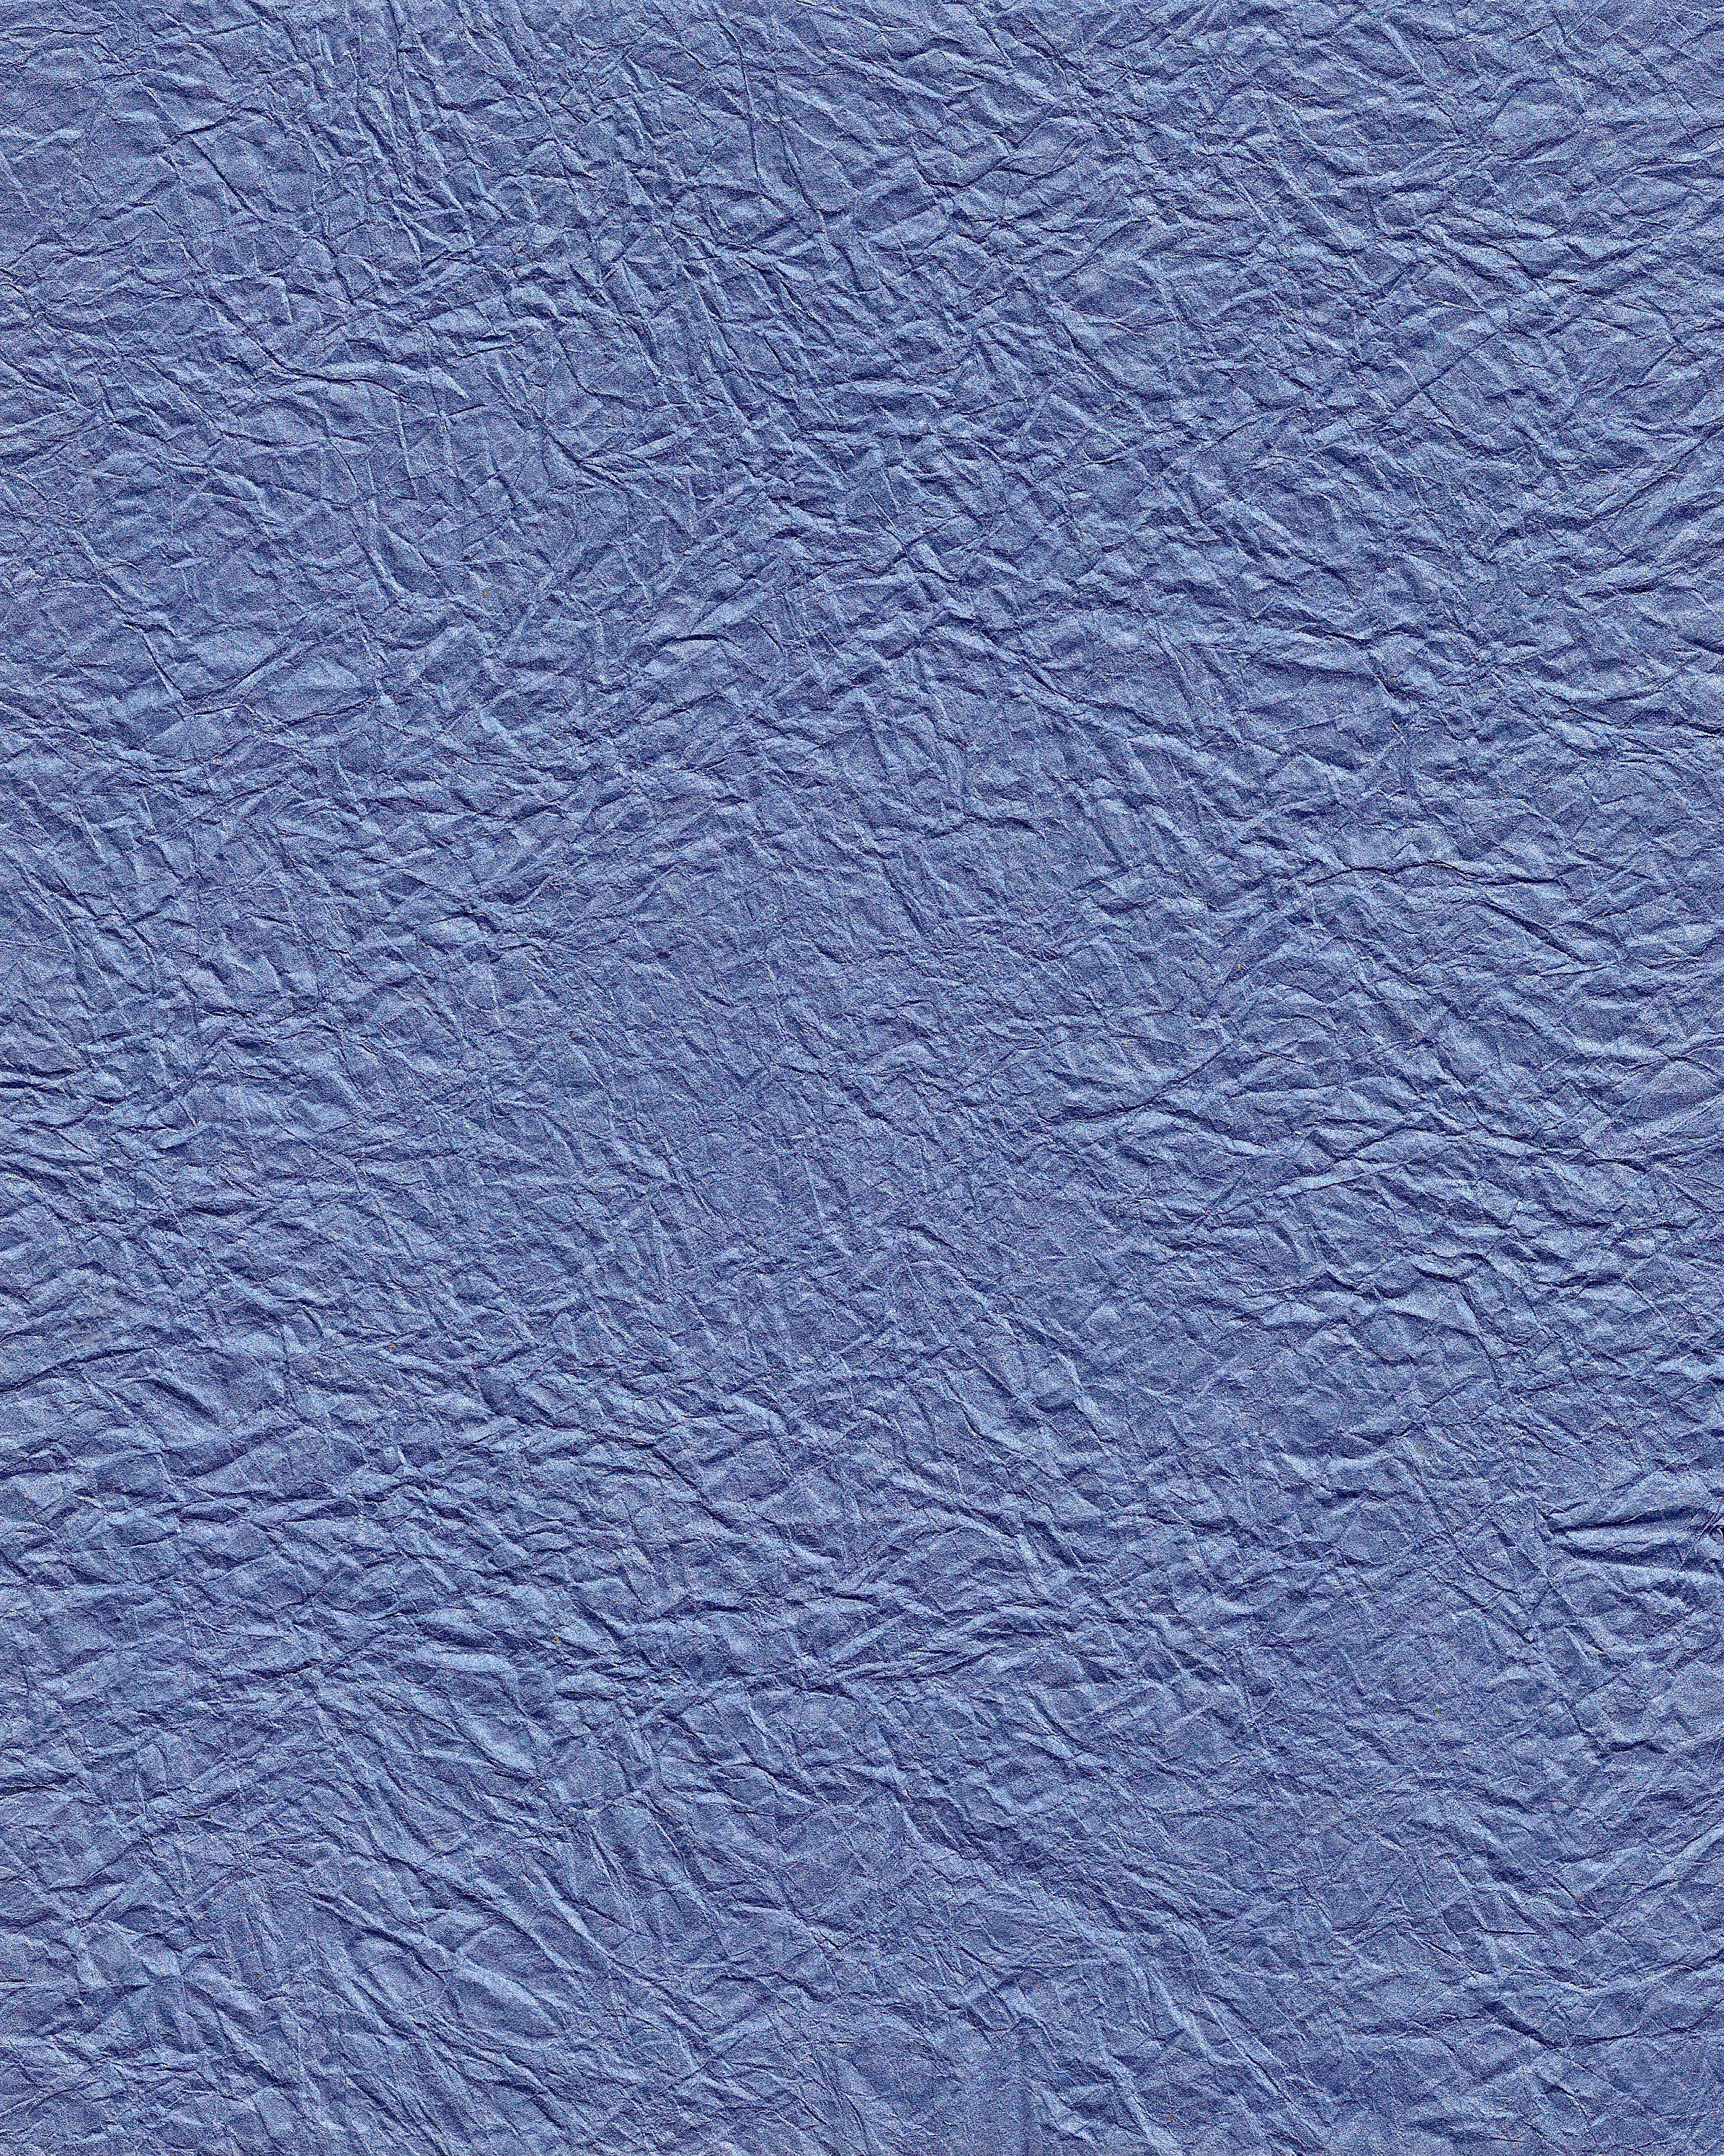 blue wrinkled paper texture - photo #10